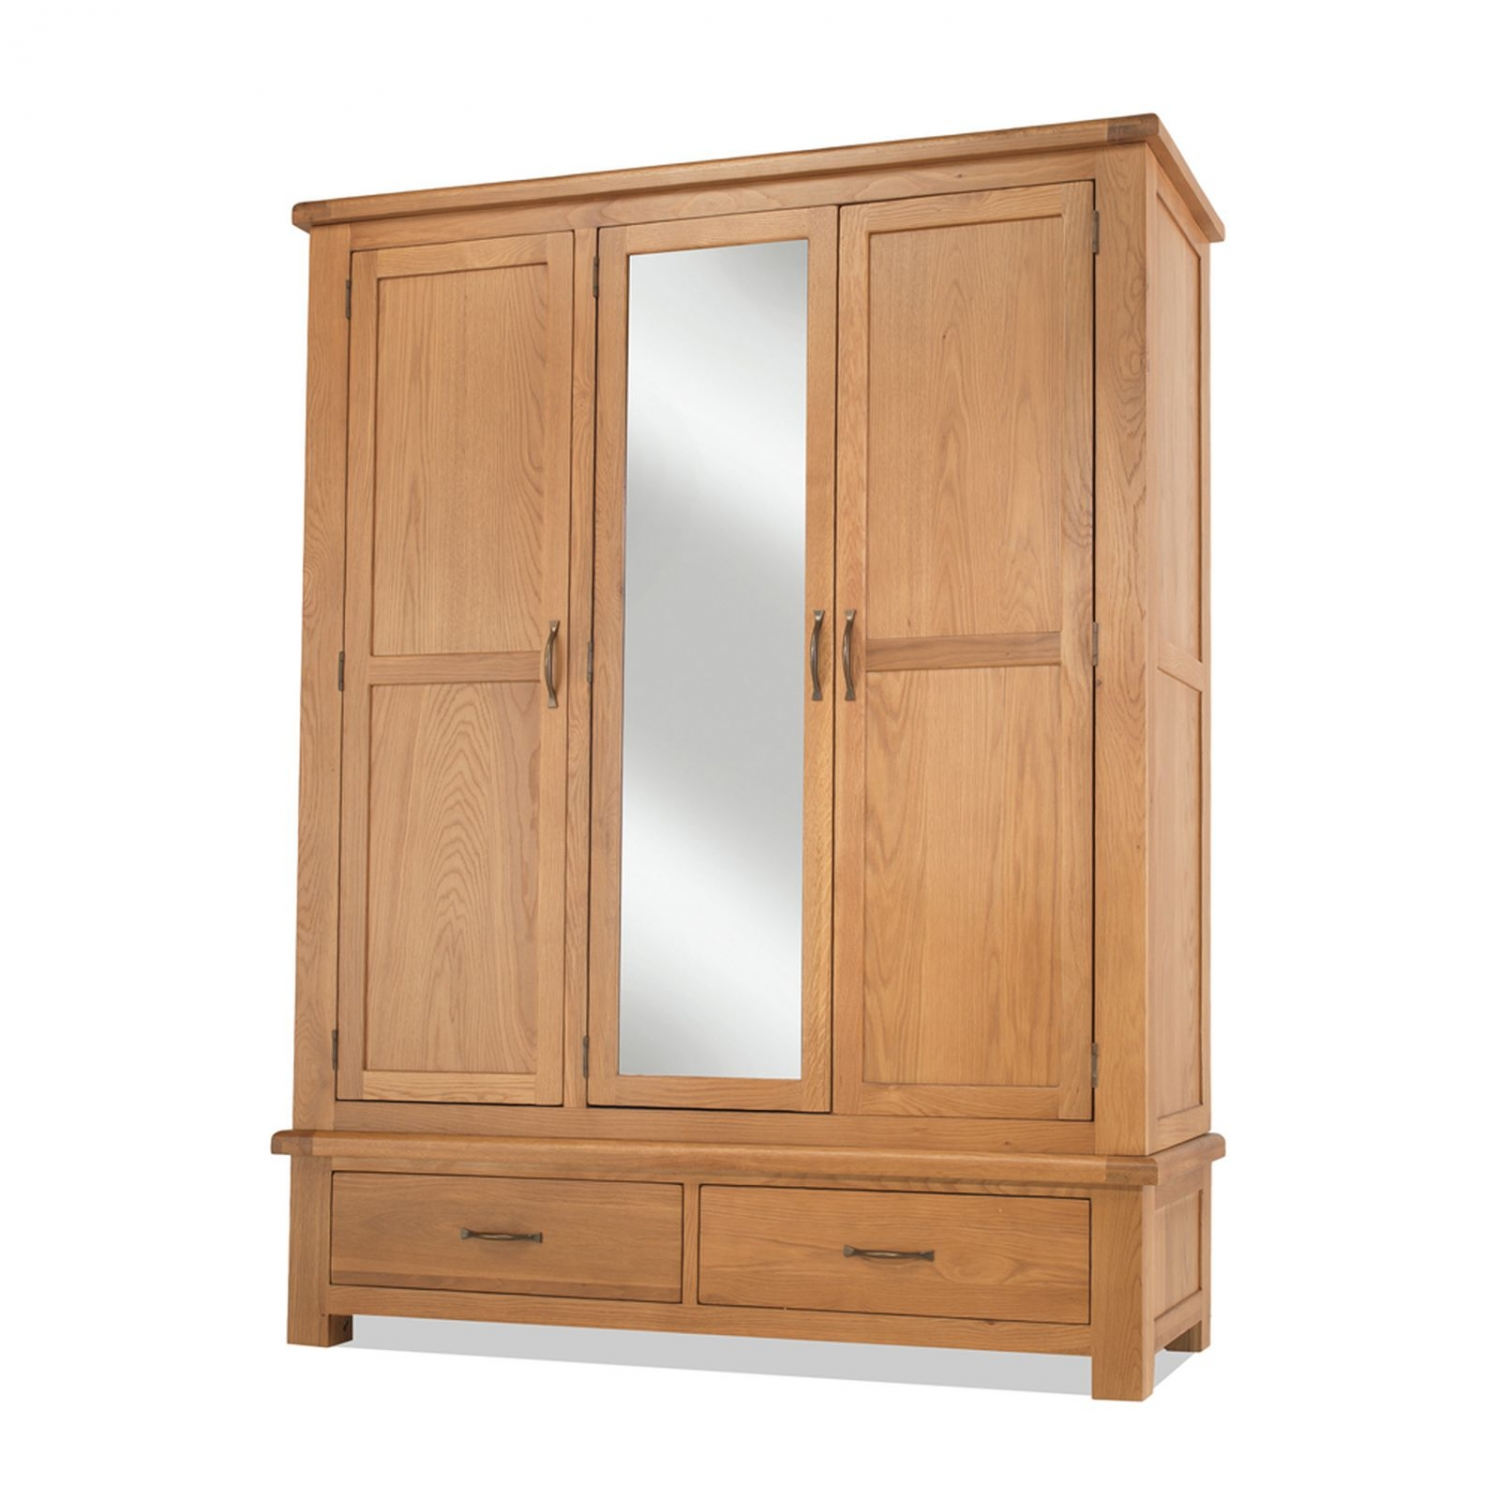 tuscany solid oak bedroom furniture triple wardrobe with